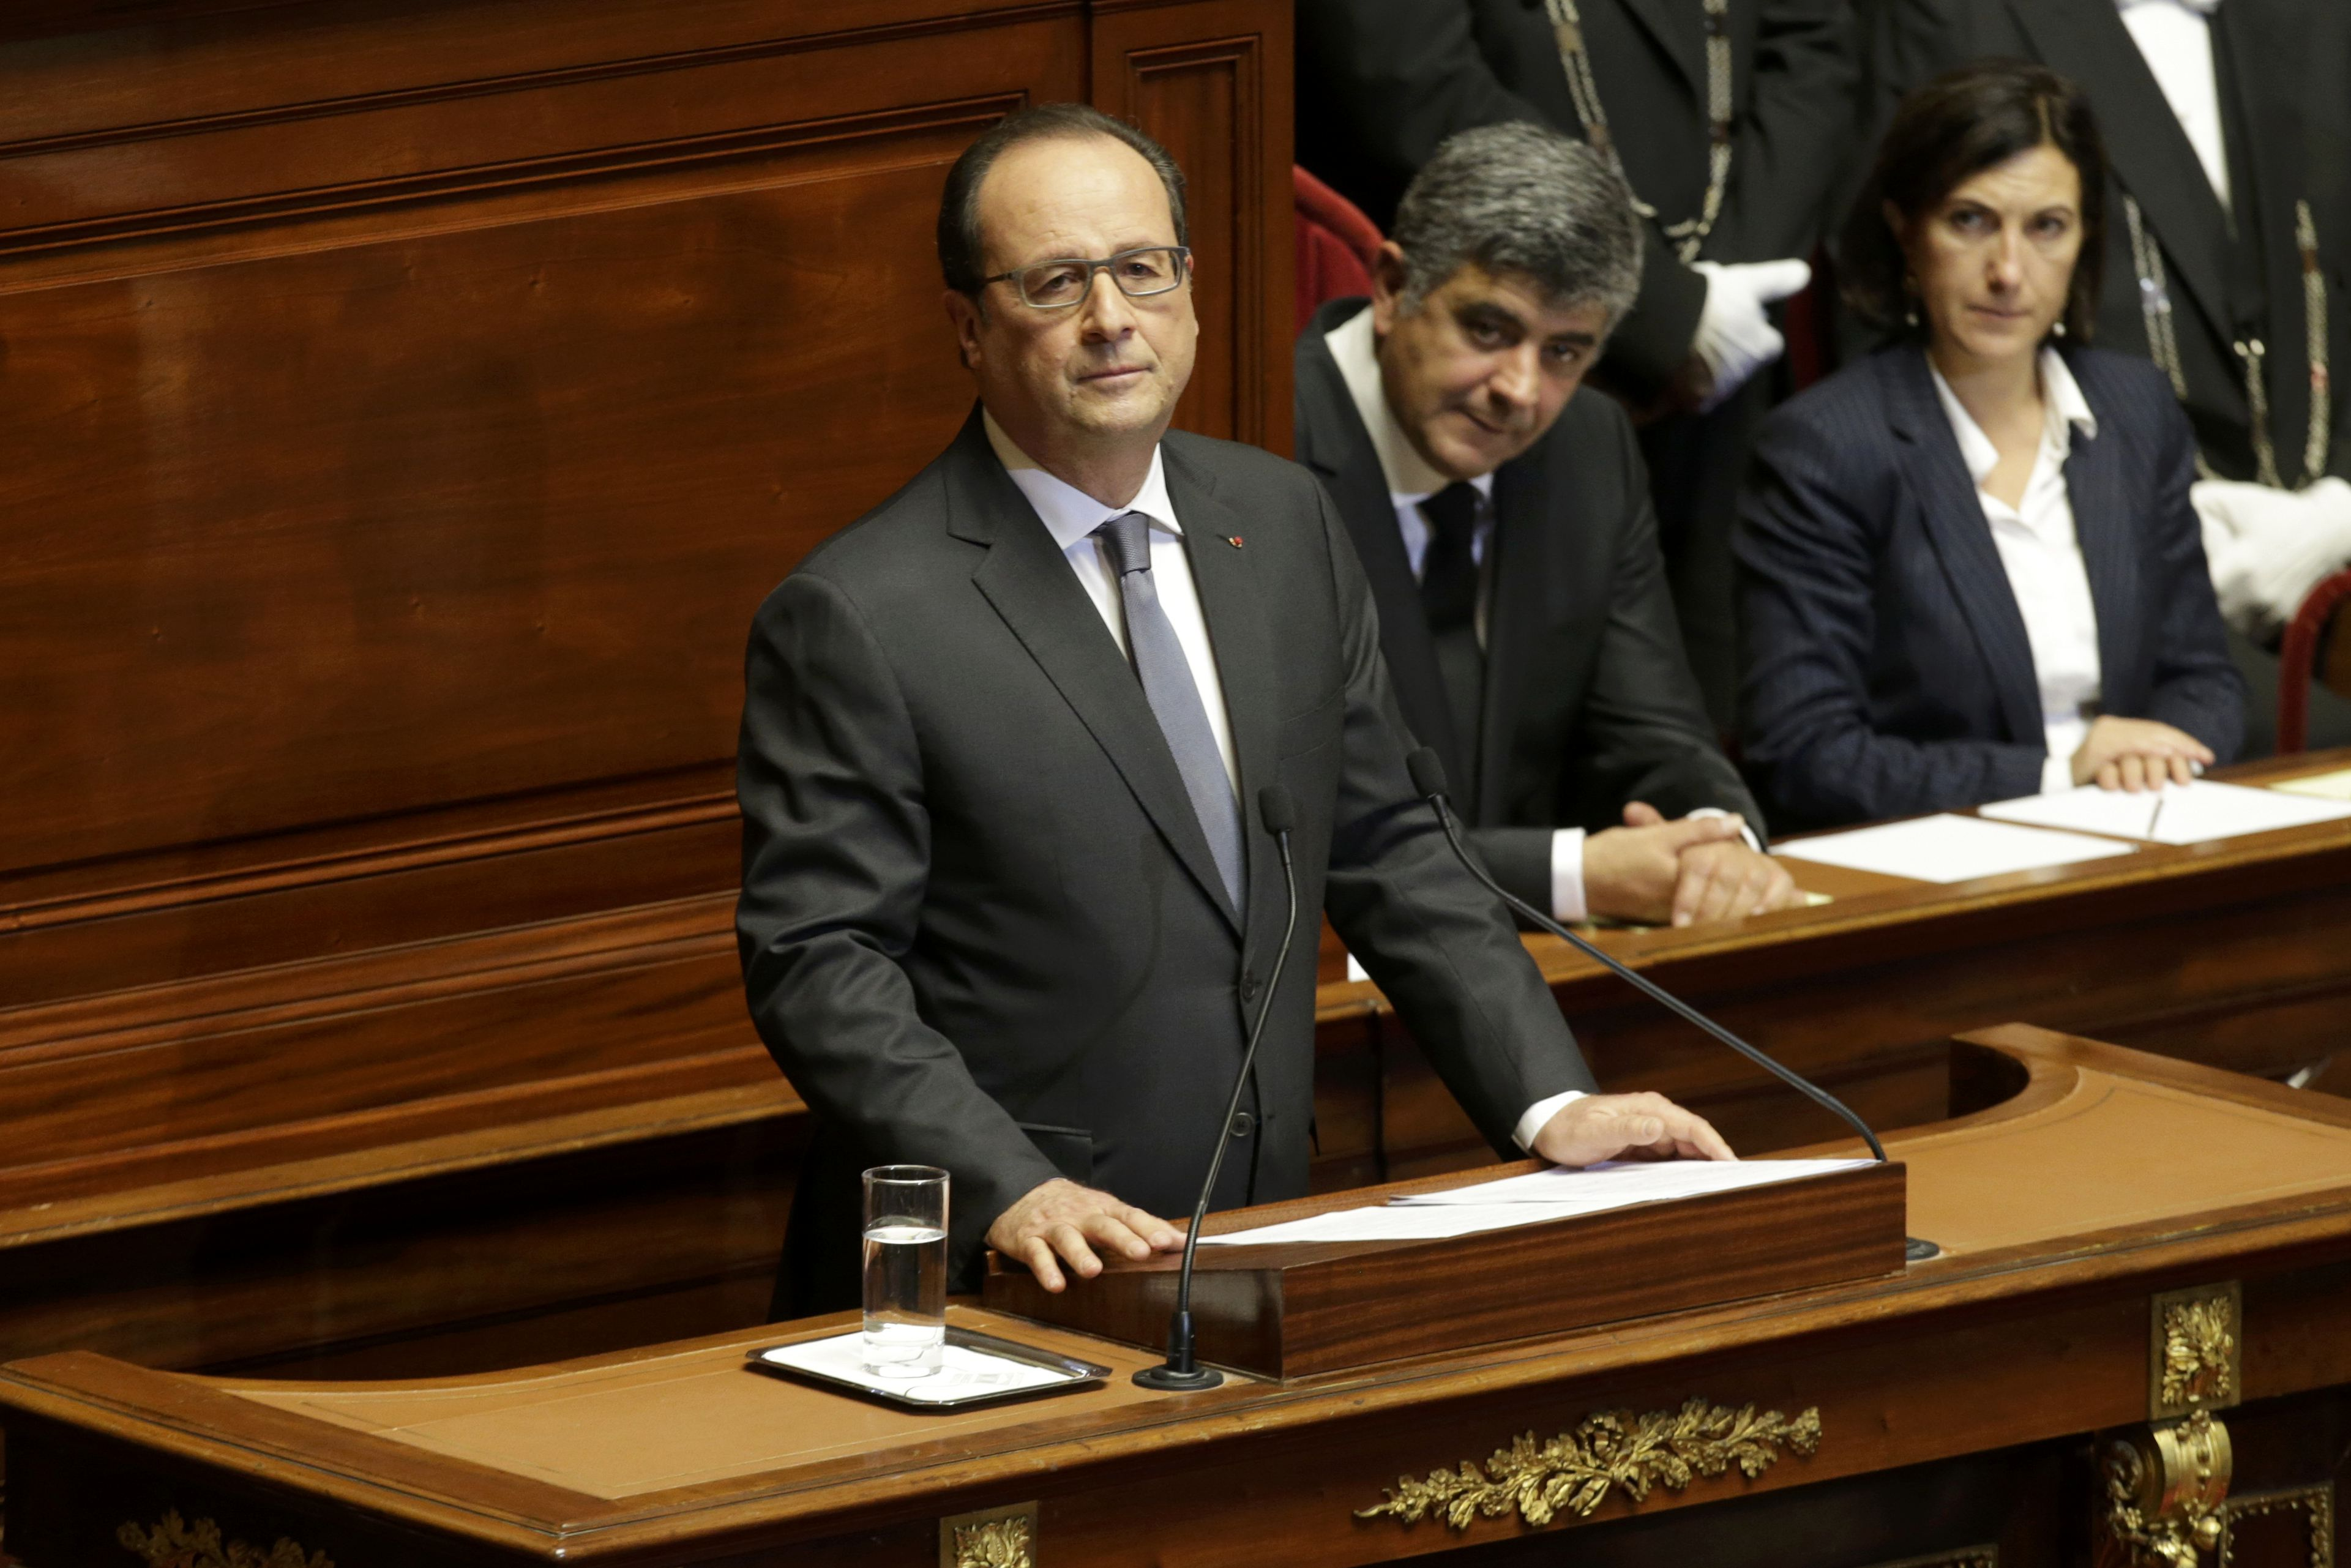 French President Francois Hollande reacts as he delivers a speech at a special congress of the joint upper and lower houses of parliament (National Assembly and Senate) at the Palace of Versailles, near Paris, France, November 16, 2015, following the series of deadly attacks on Friday in the French capital. Photo: Reuters